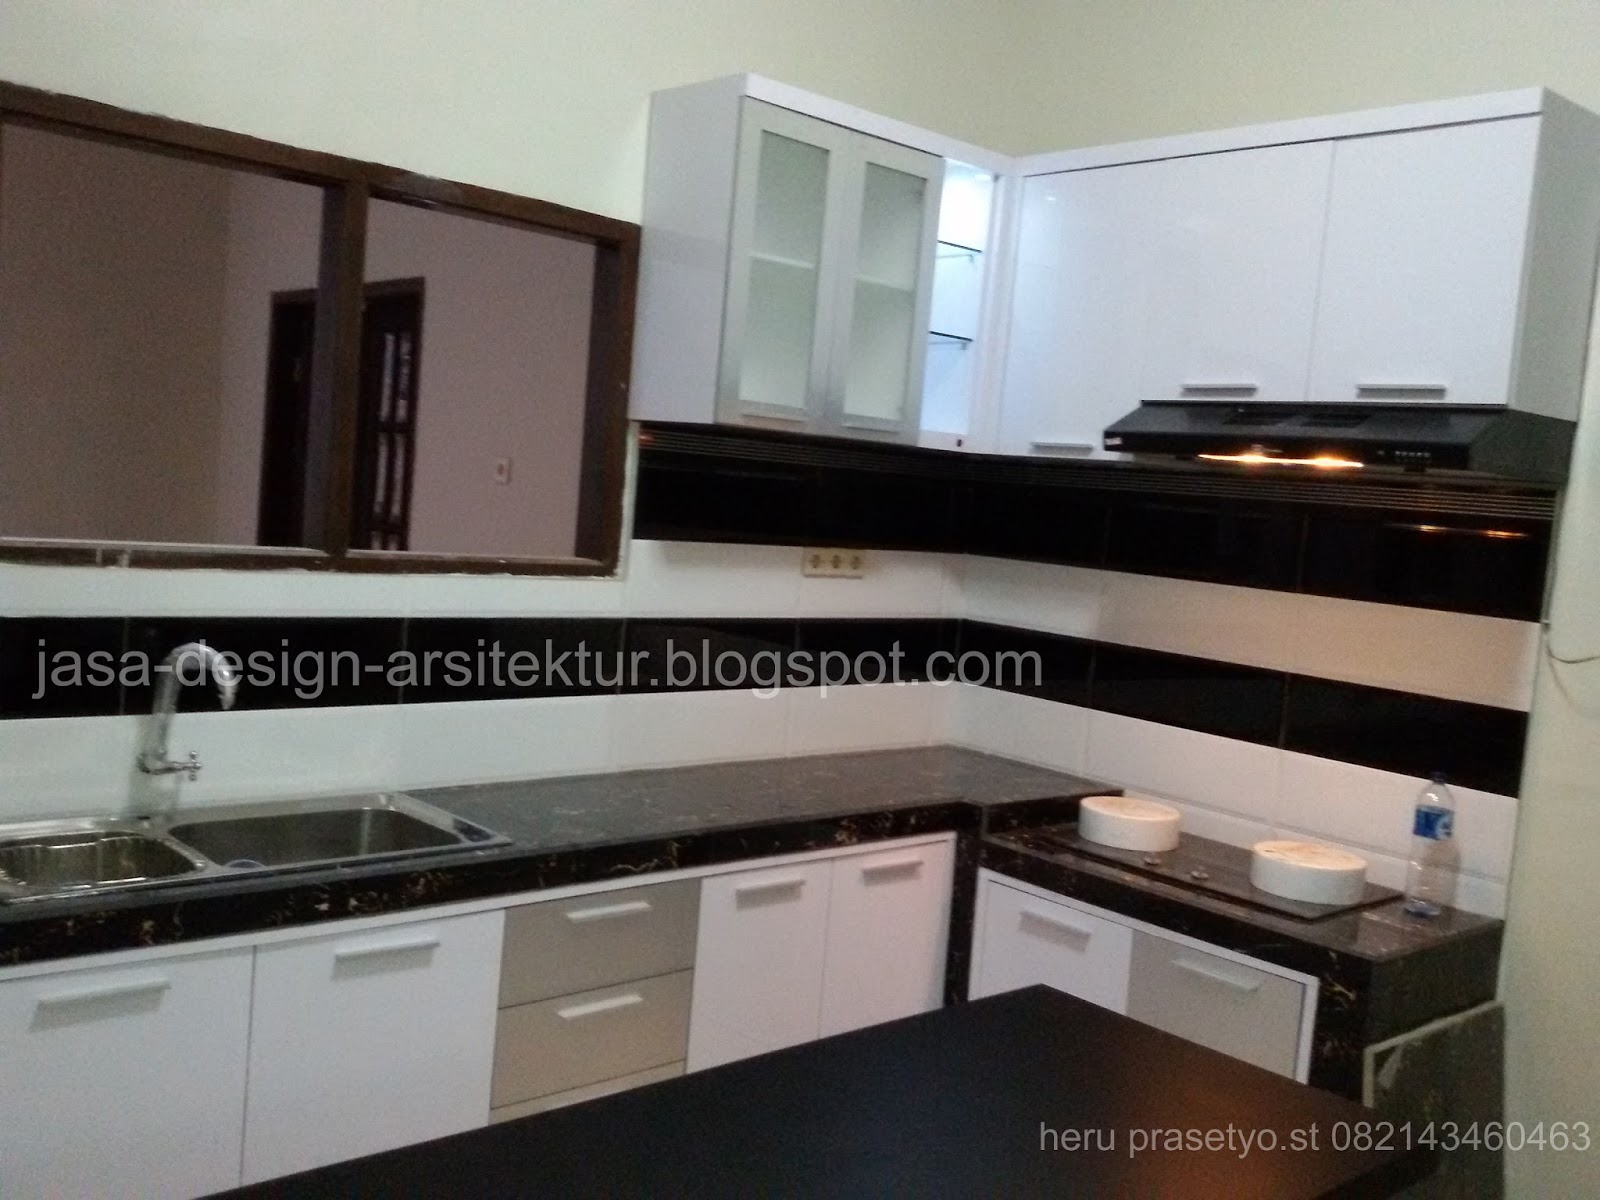 Kontraktor interior surabaya sidoarjo juli 2017 for Kitchen set hitam putih